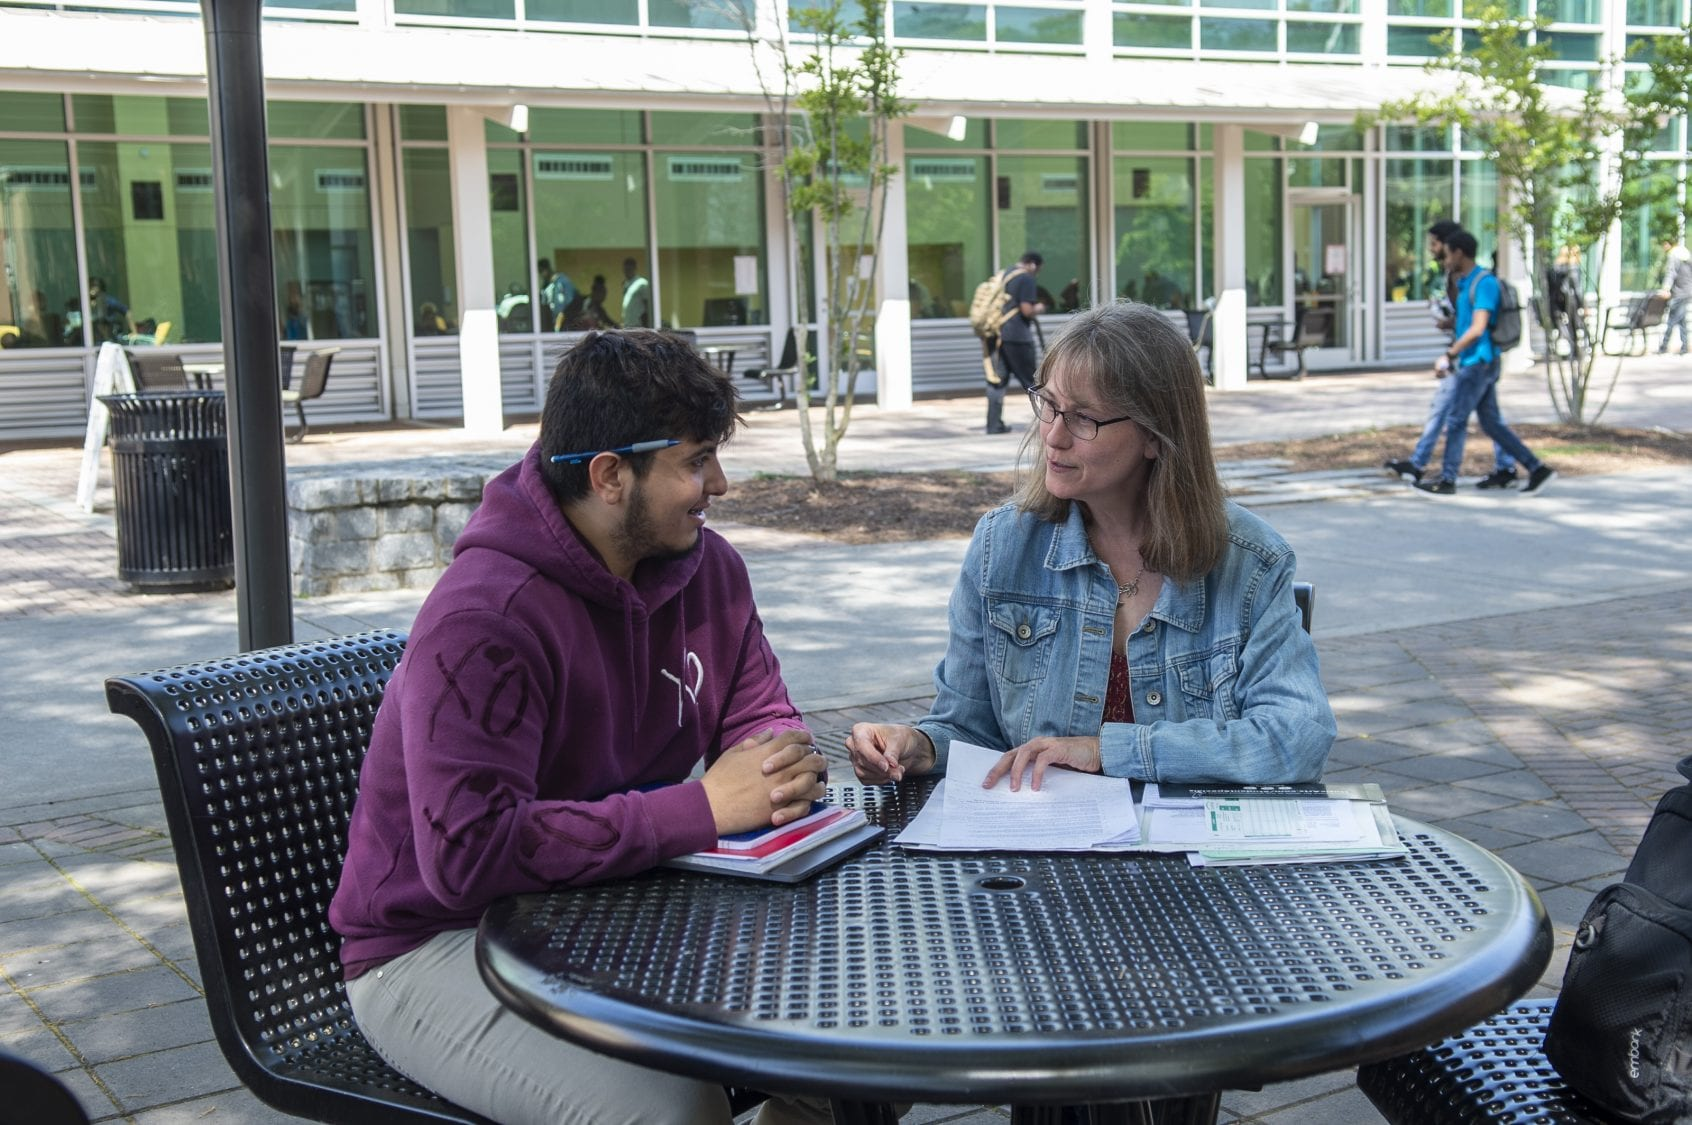 Male student sitting with female at outdoor round table